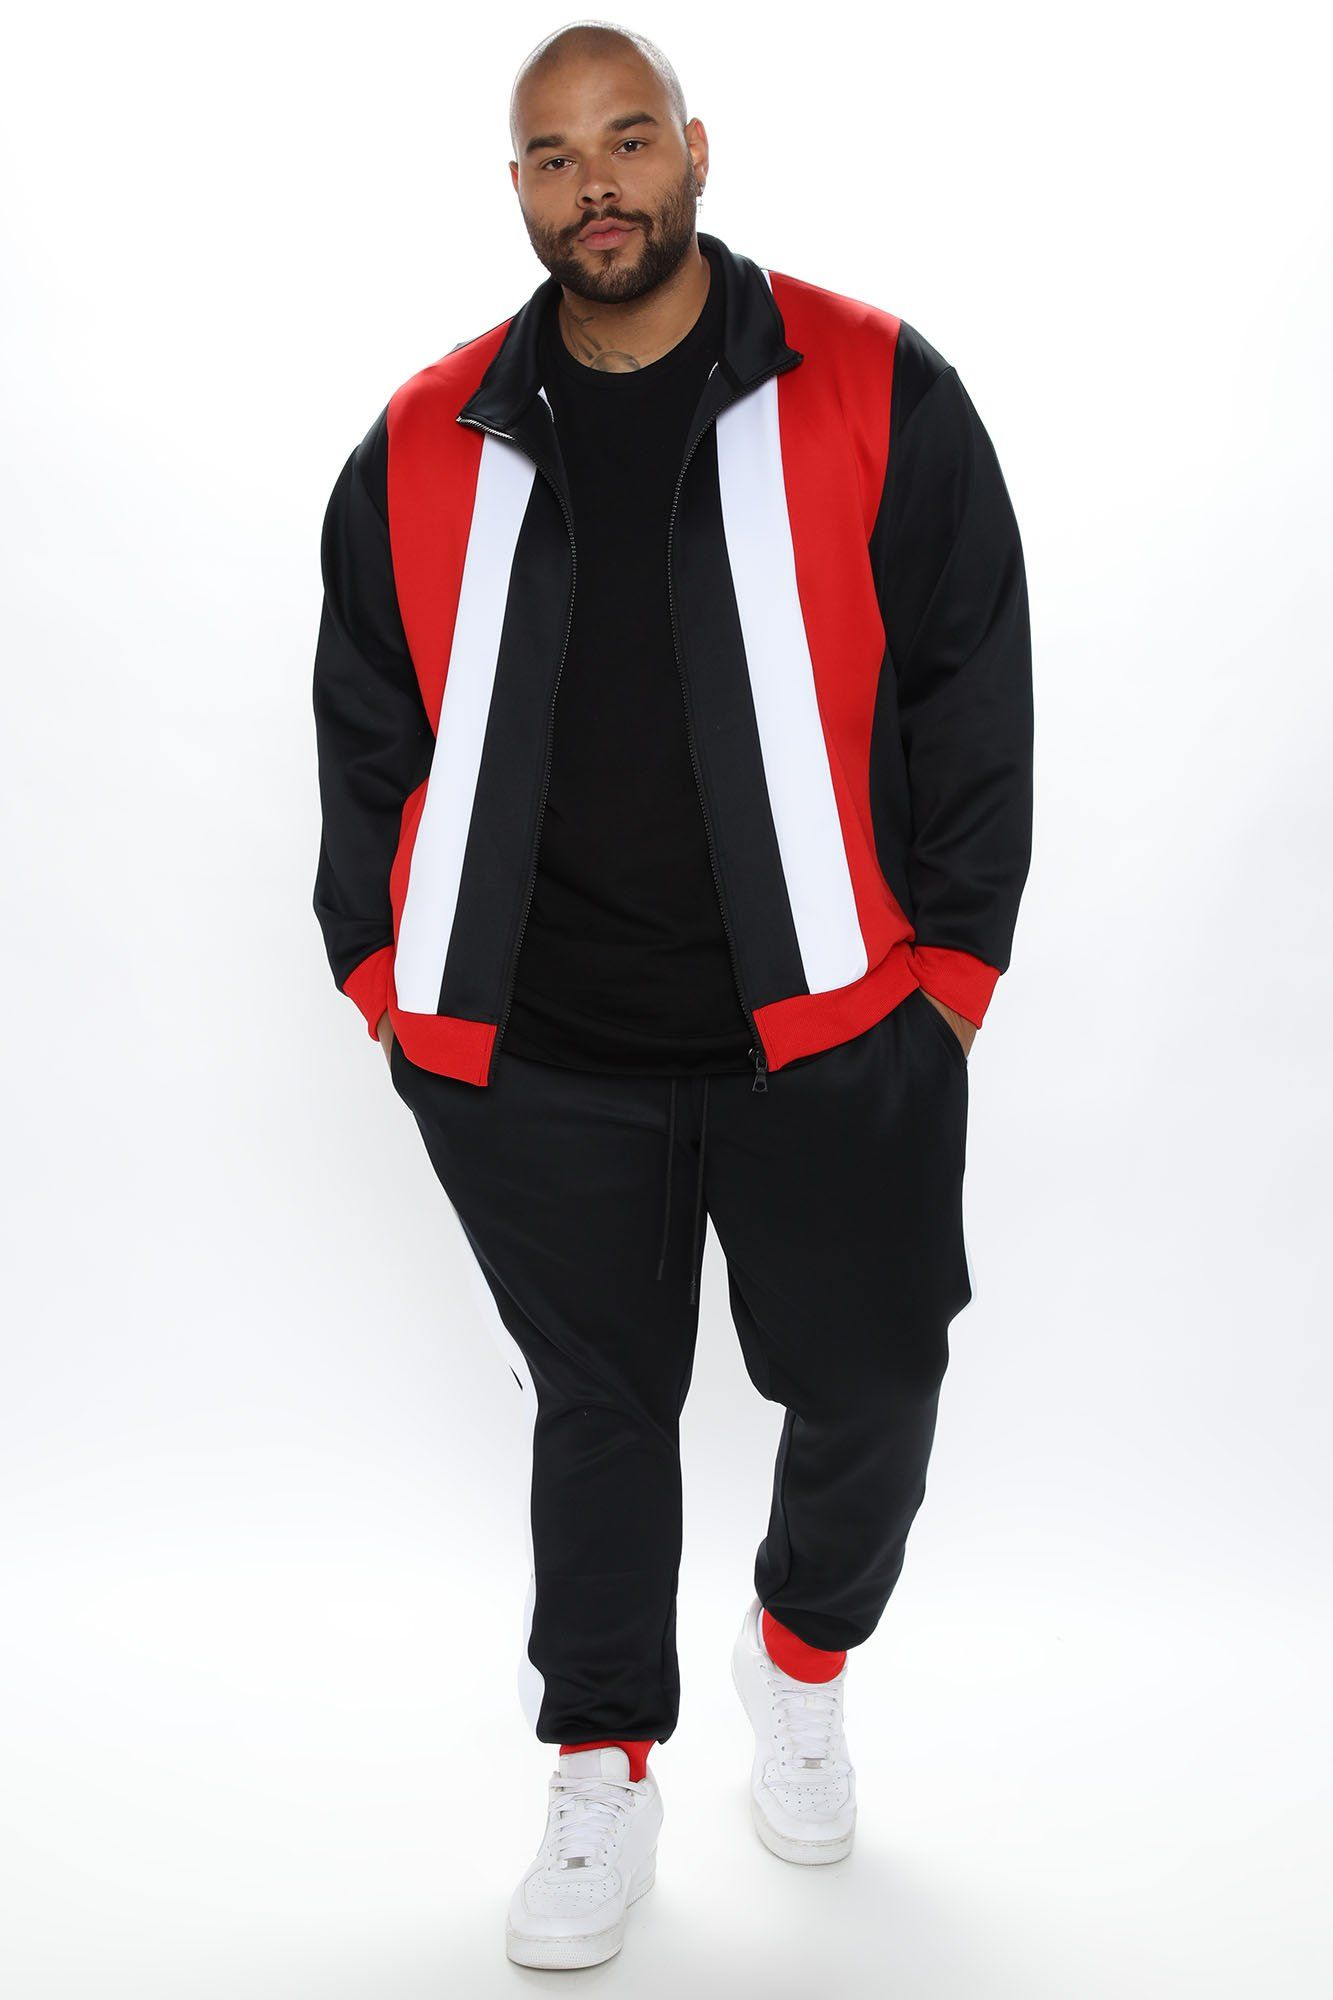 Mens Free To Feel Track Jacket in Black/Combo size 2XL by Fashion Nova